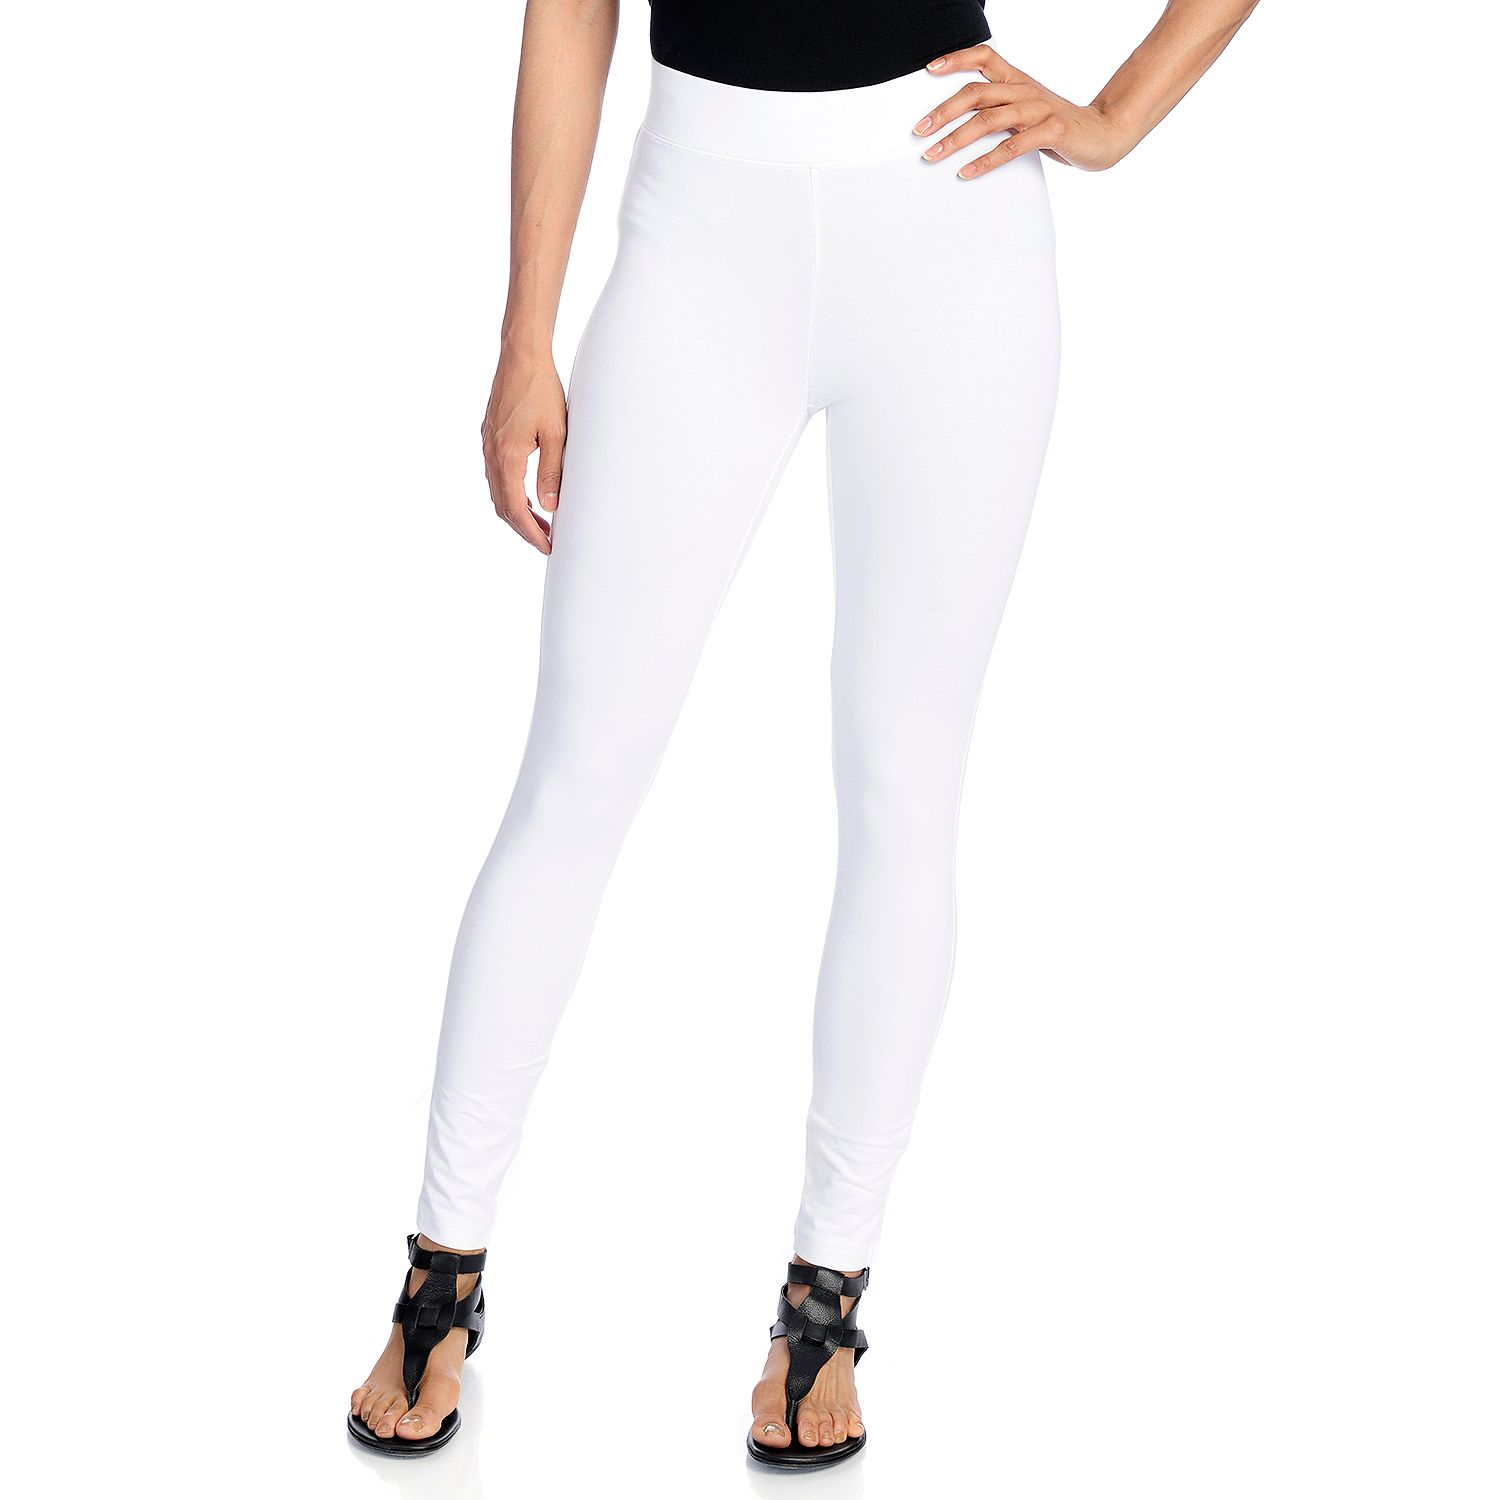 Slimming Options Leggings